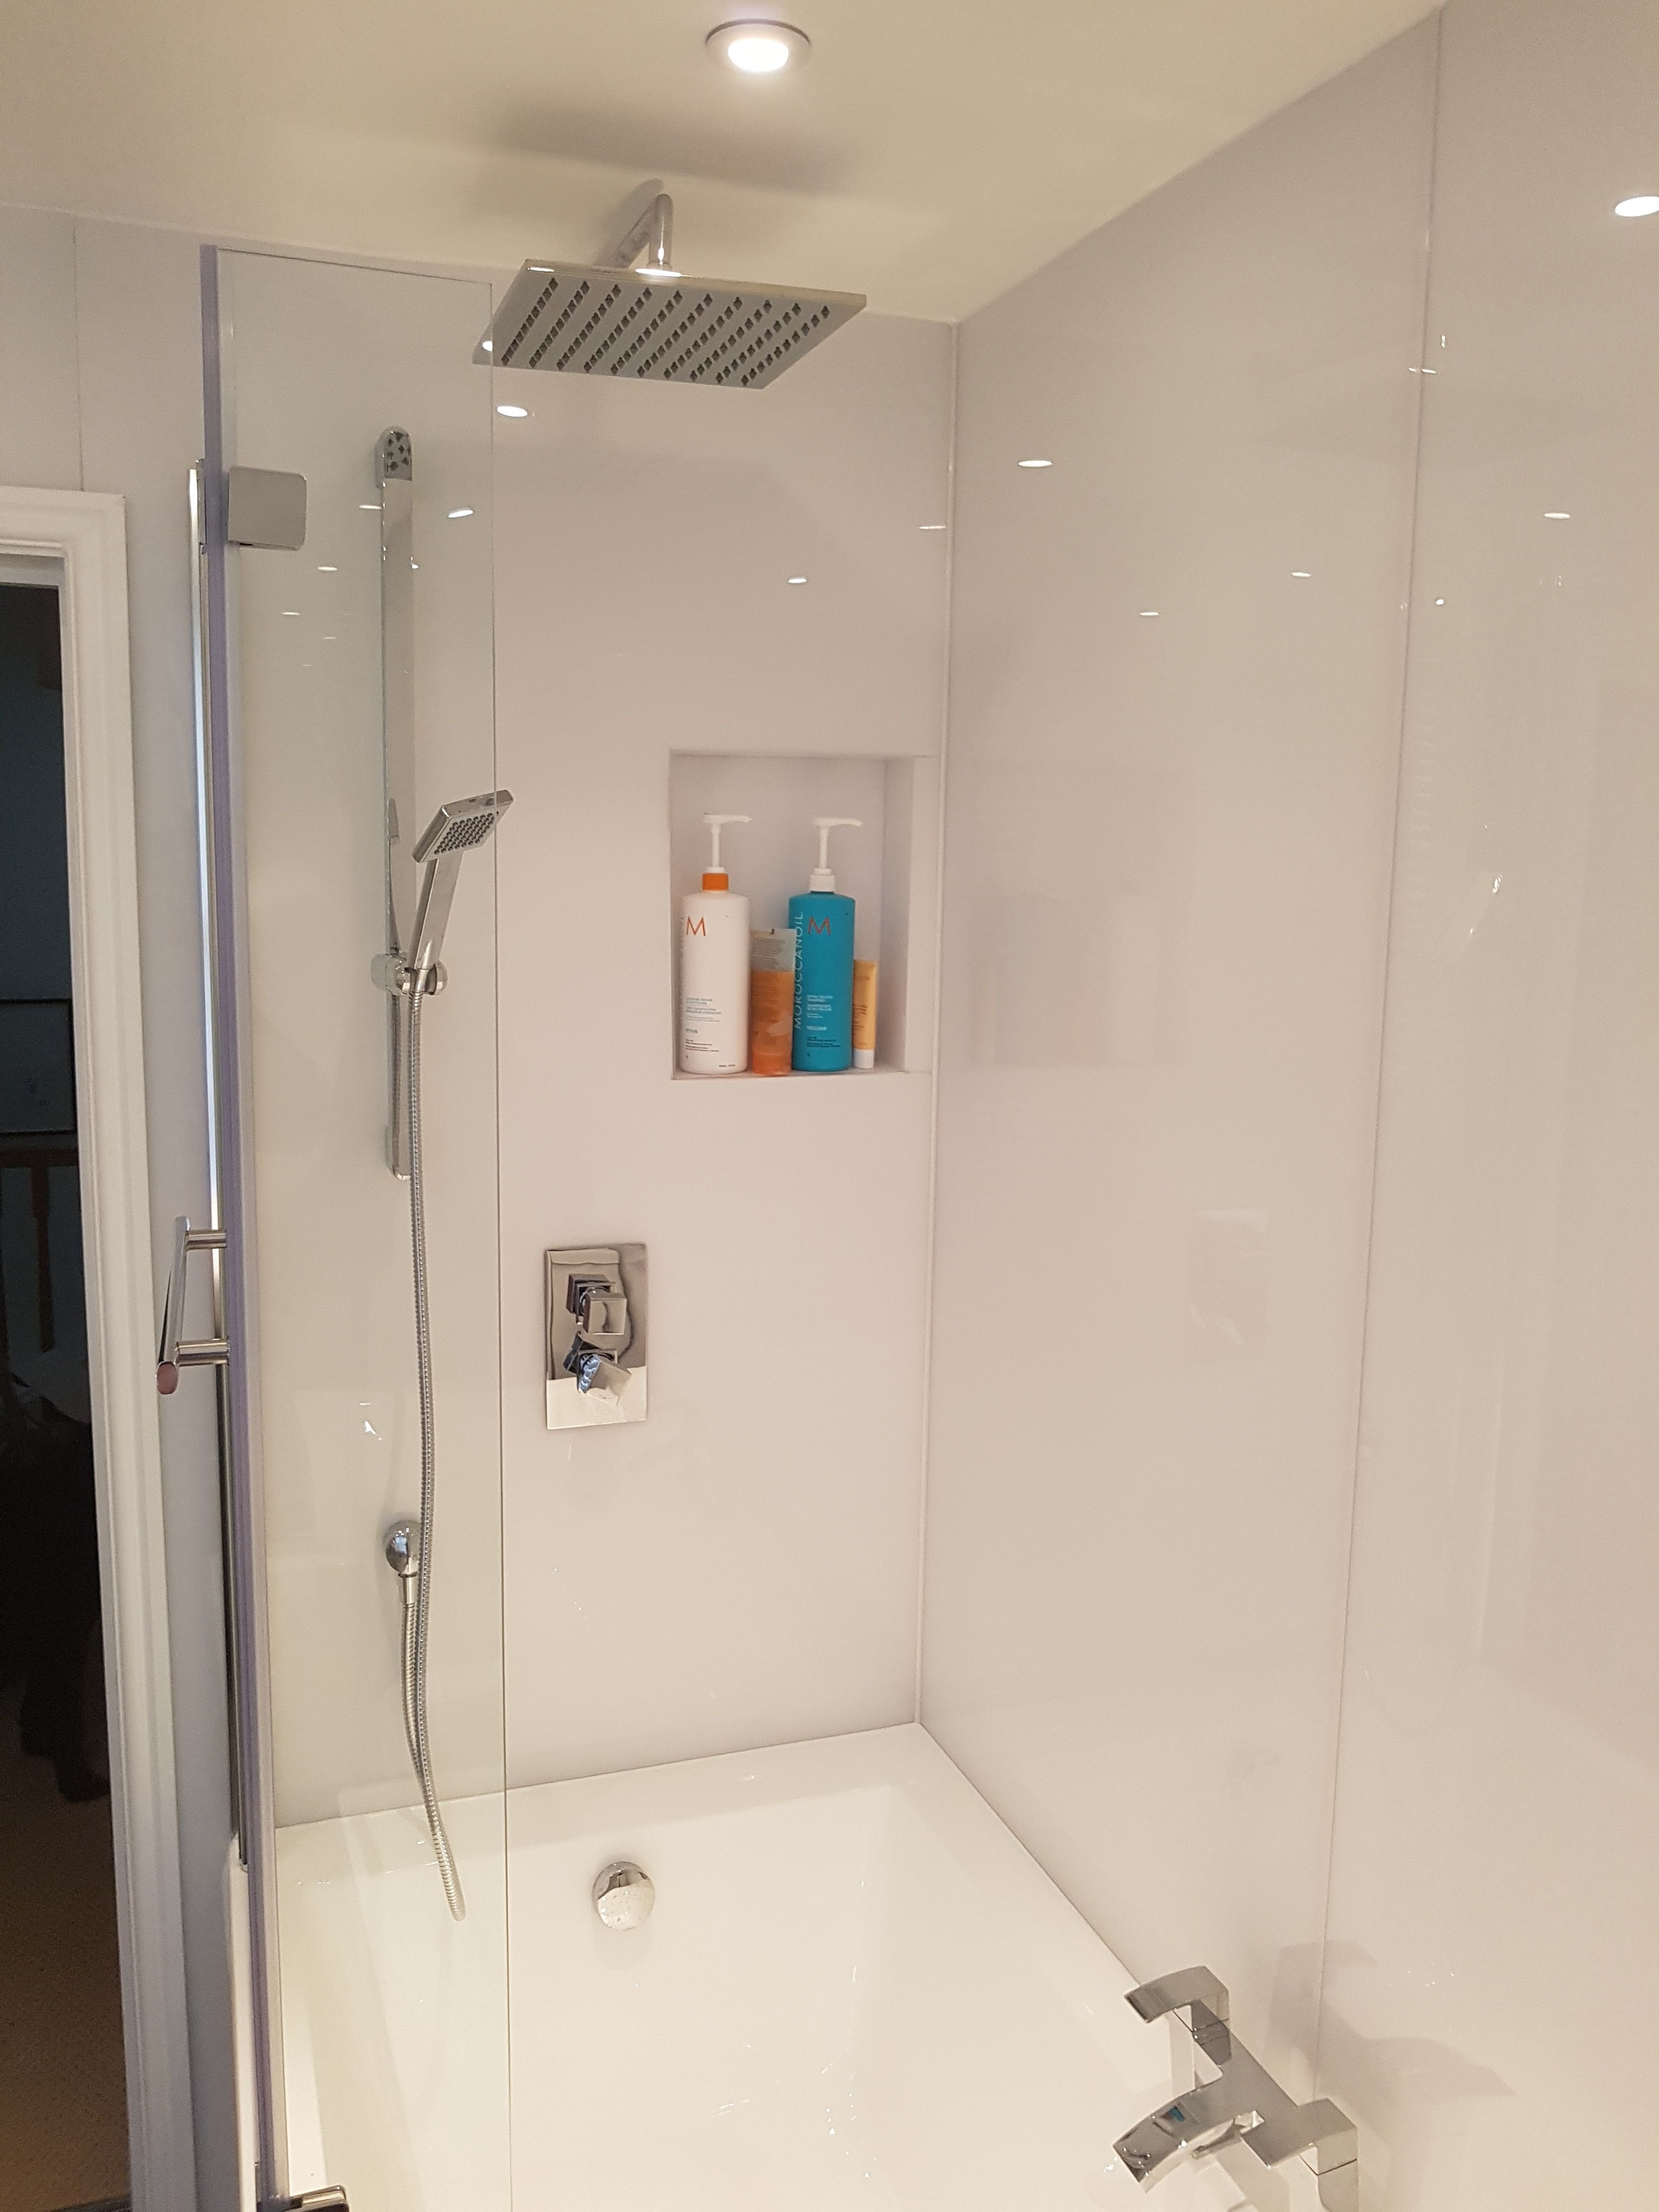 Double shower in the white bathroom | Home improvements | Pinterest ...